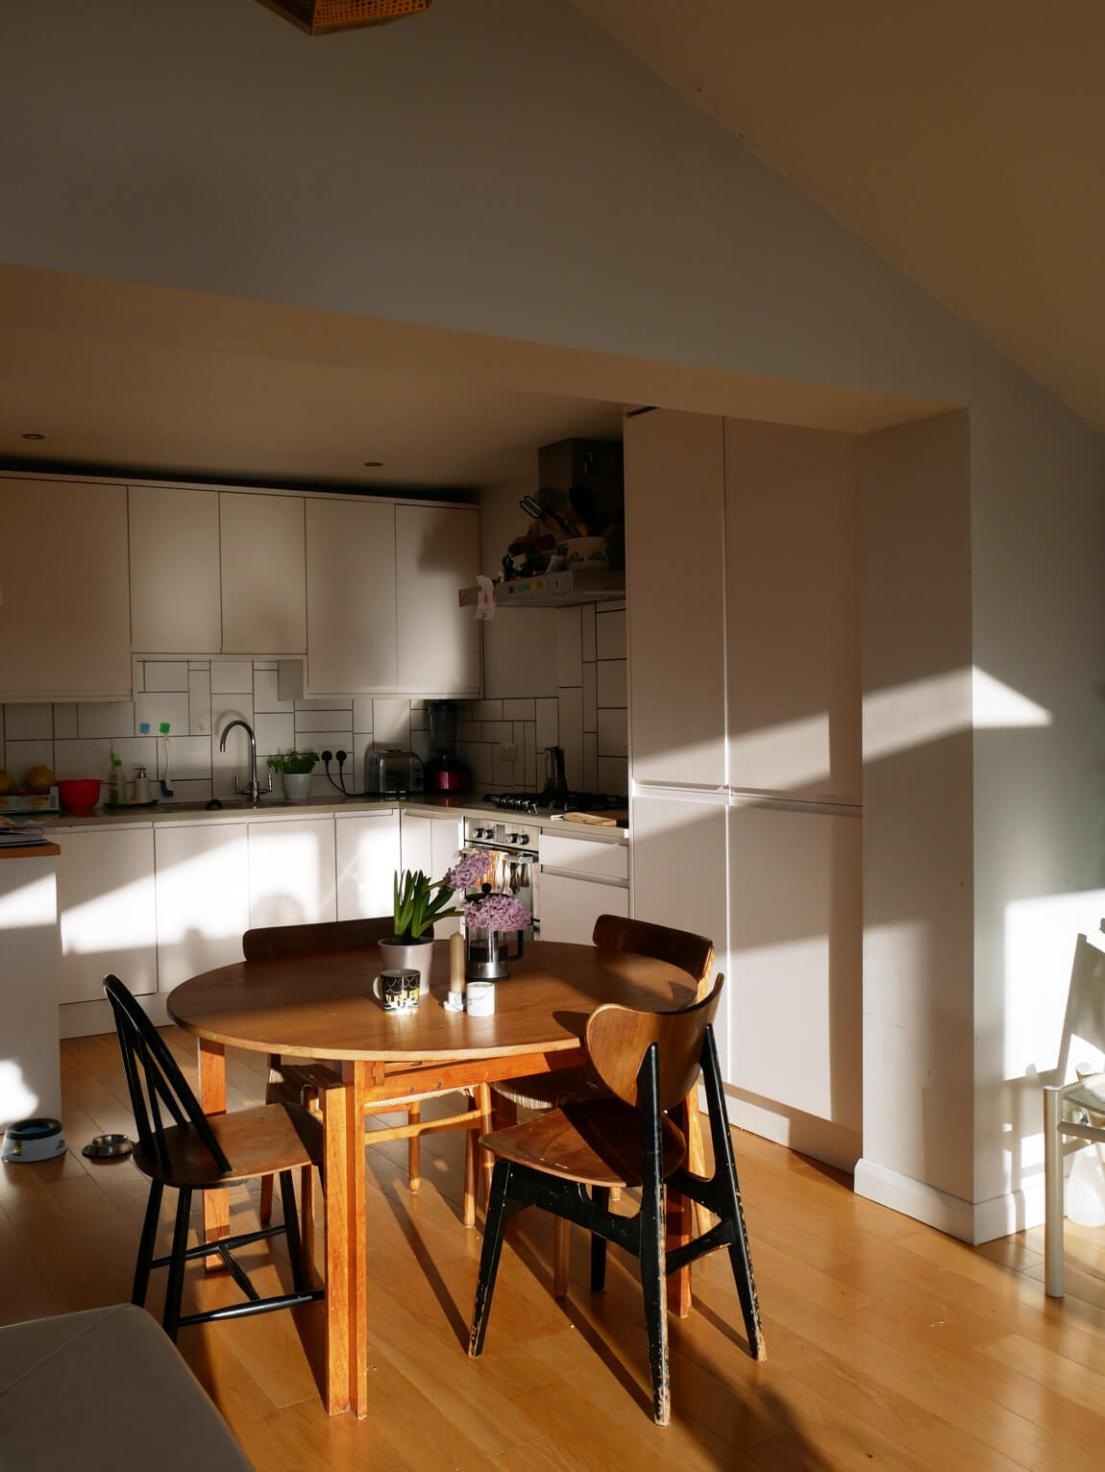 Bright breakfast table in a bright kitchen diner. Rena, a nature connected home with natural materials throughout.